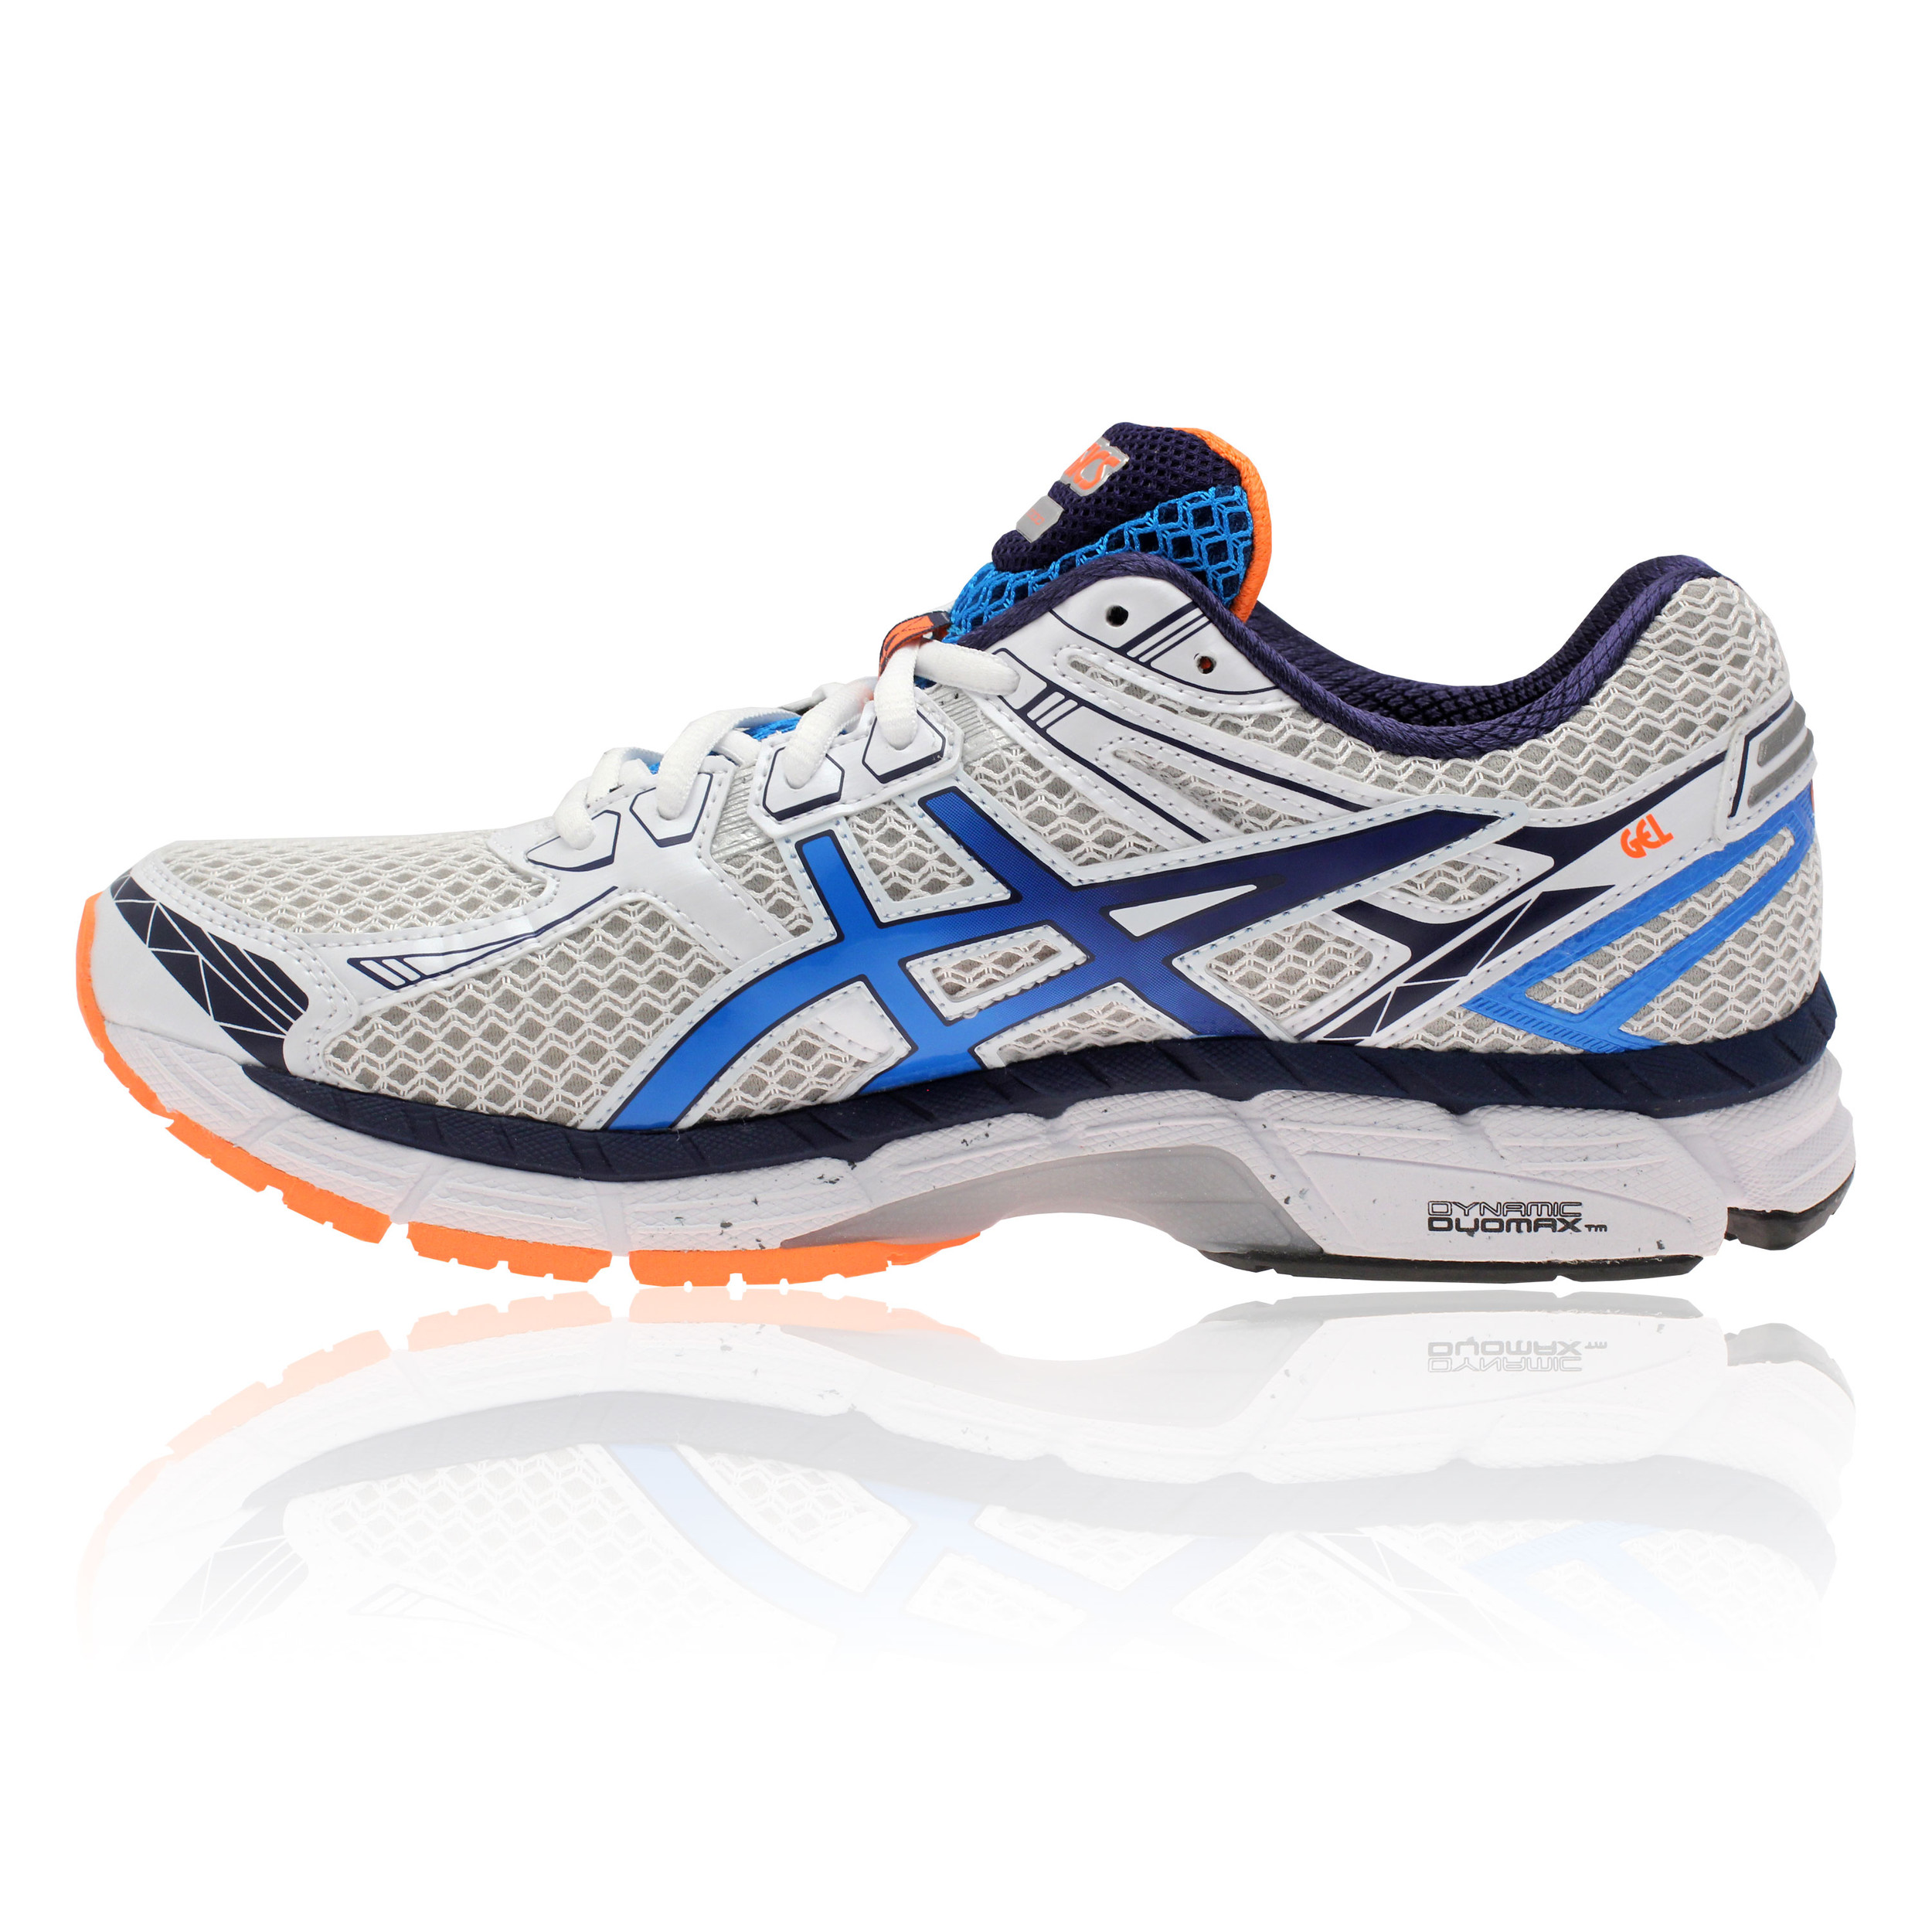 Running Shoes That Encourage Forefoot Strike